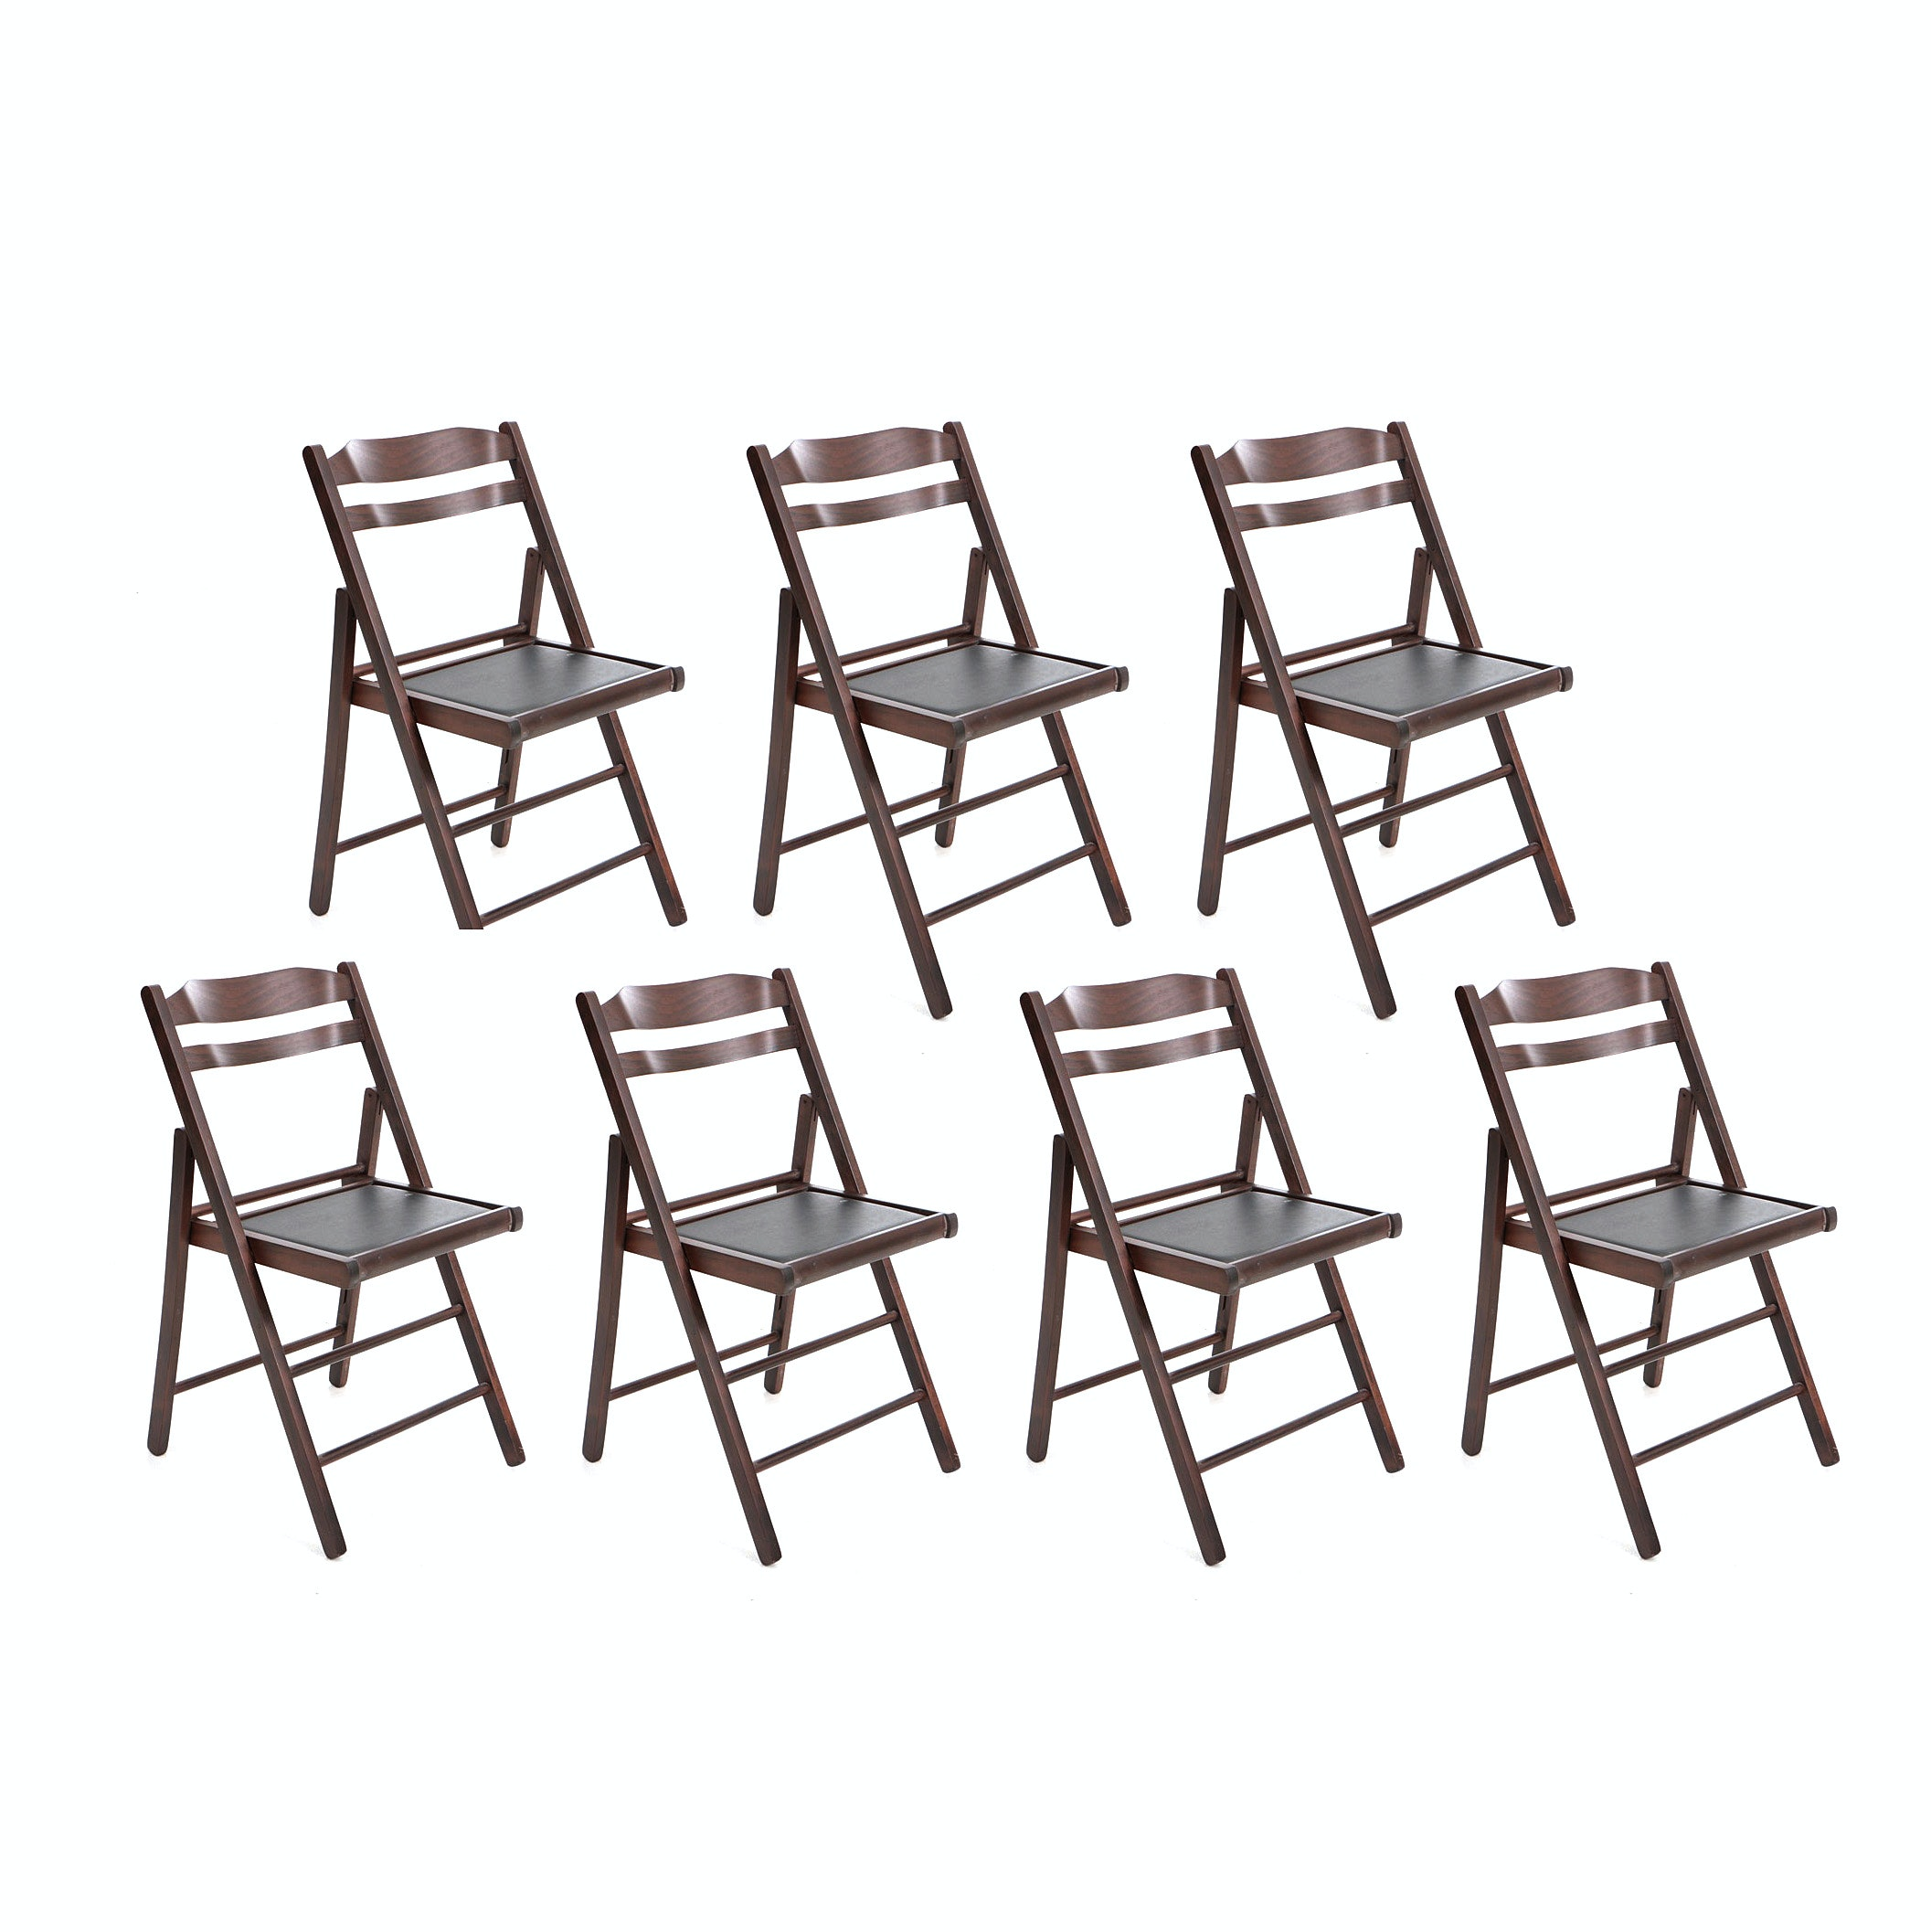 Wood and Faux Leather Folding Chairs by Linon Home Décor